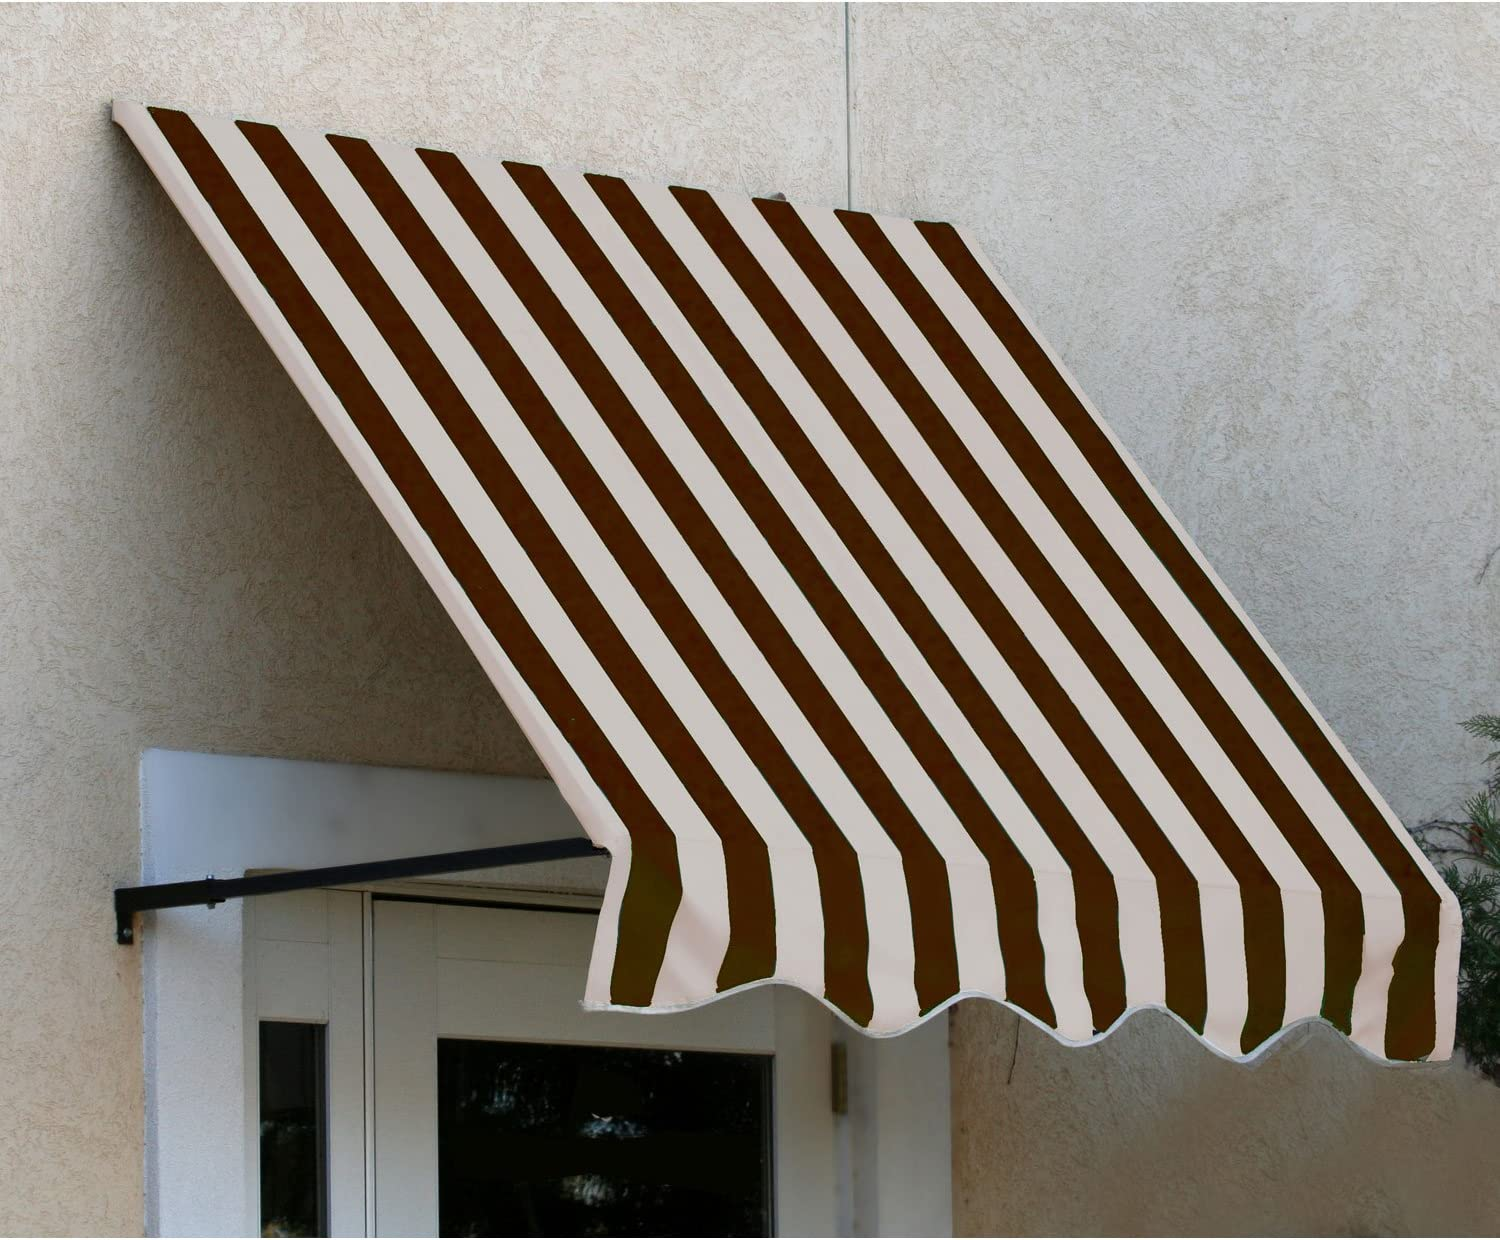 44-Inch Height by 48-Inch Diameter Awntech 6-Feet Dallas Retro Window//Entry Awning Linen